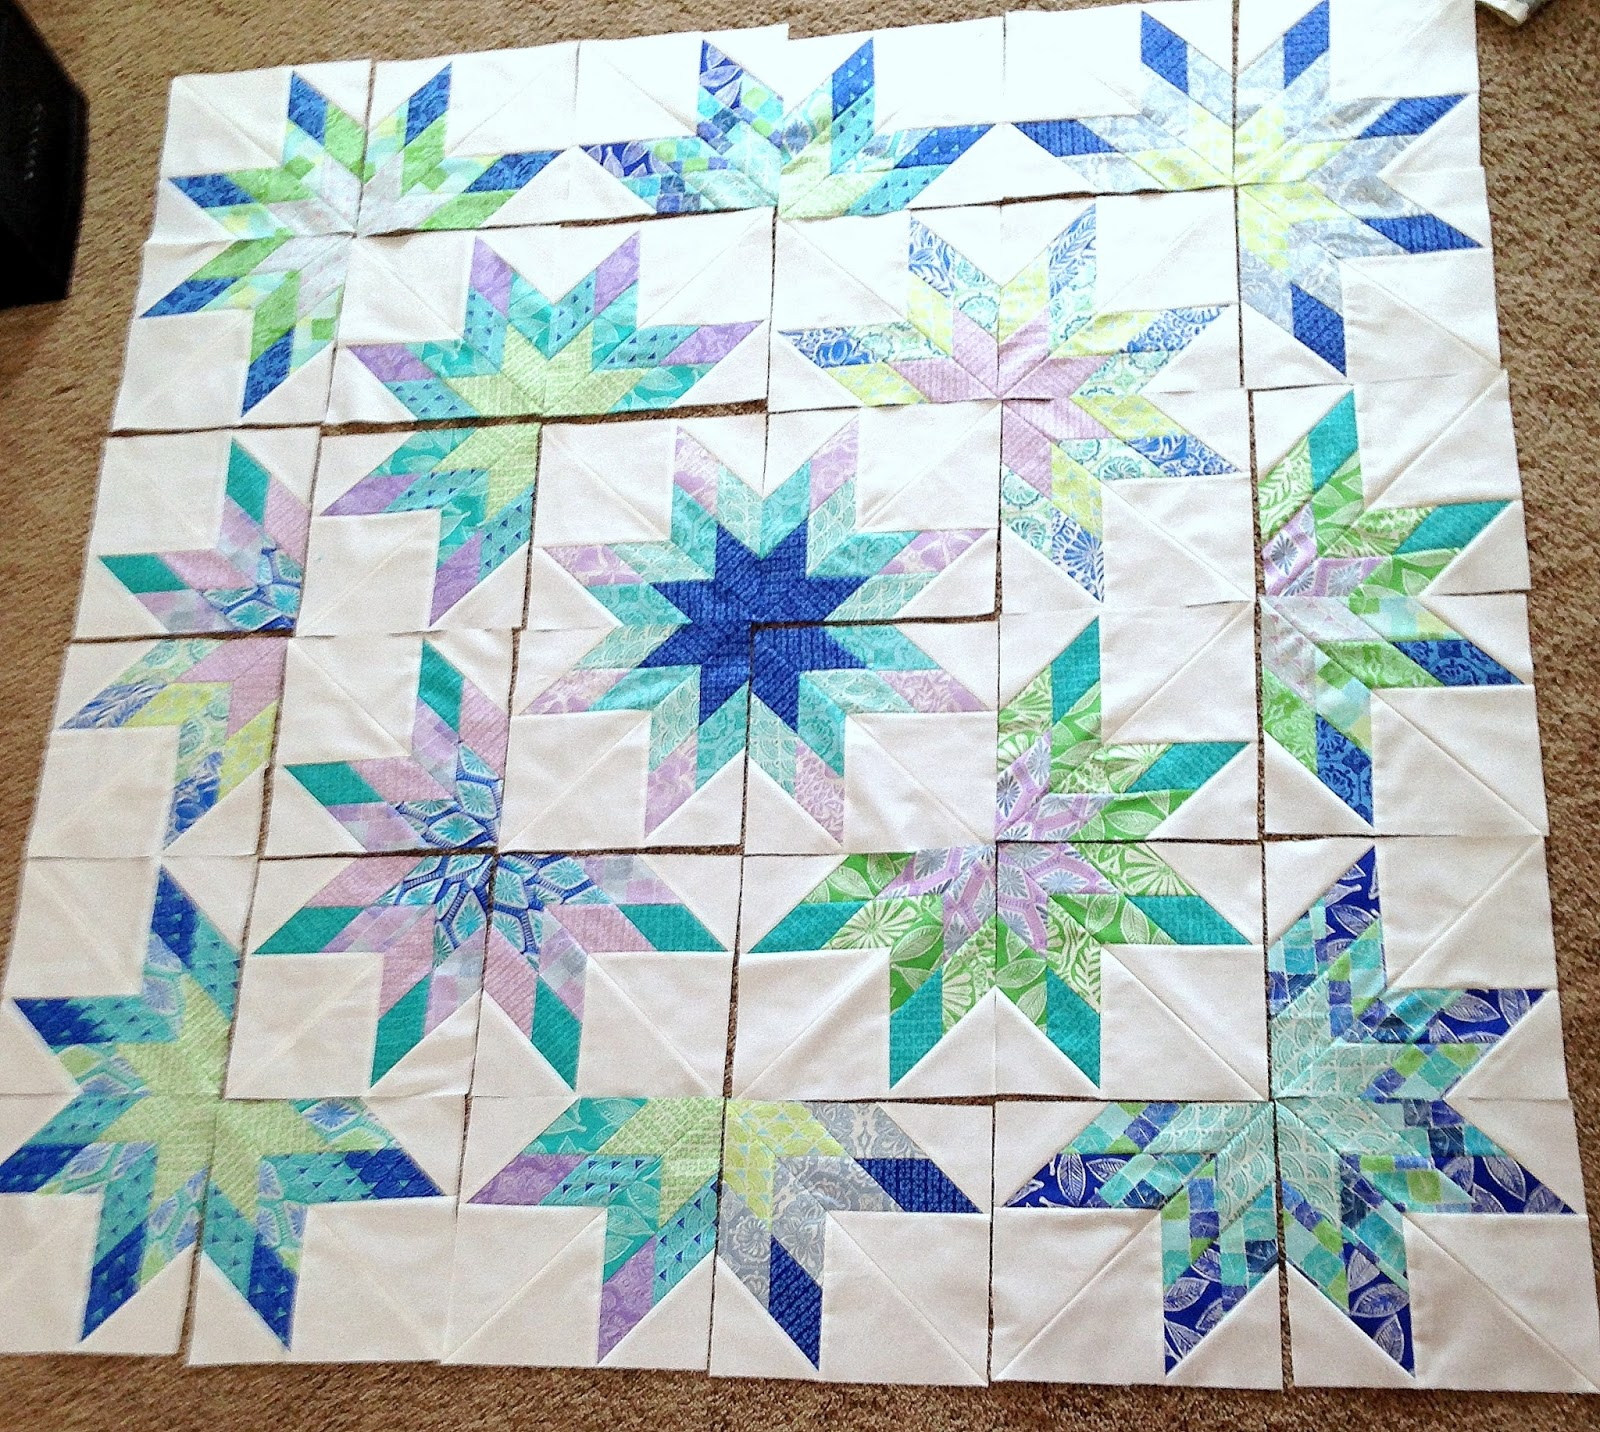 Stories from the Sewing Room: Lone Starburst Quilt Class with ... : starburst quilt - Adamdwight.com